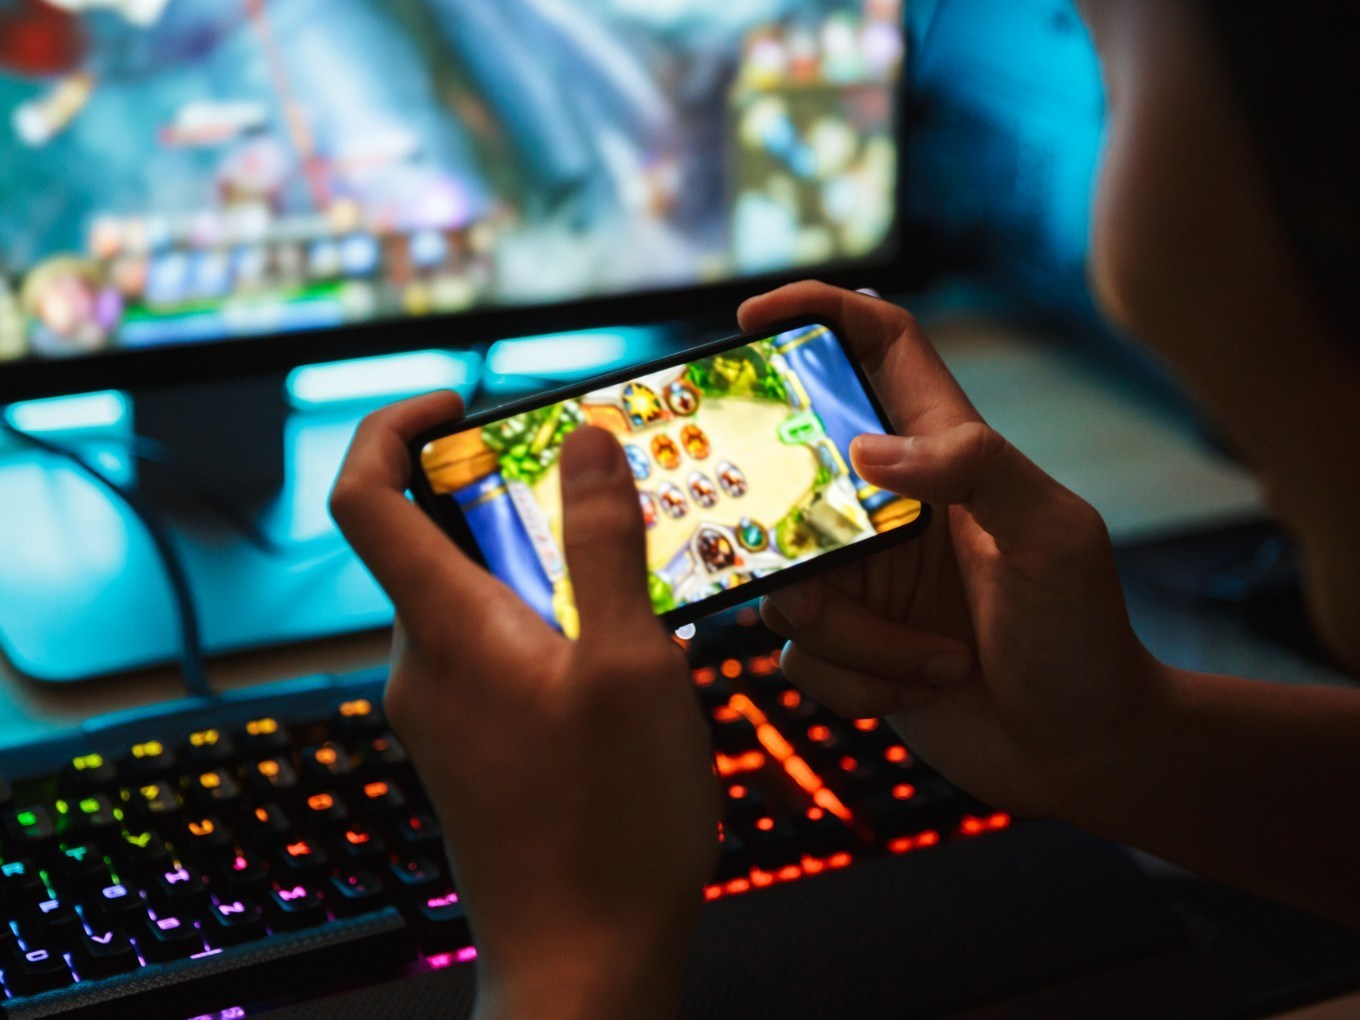 Advantages of Playing Free Online Games over Video Gaming